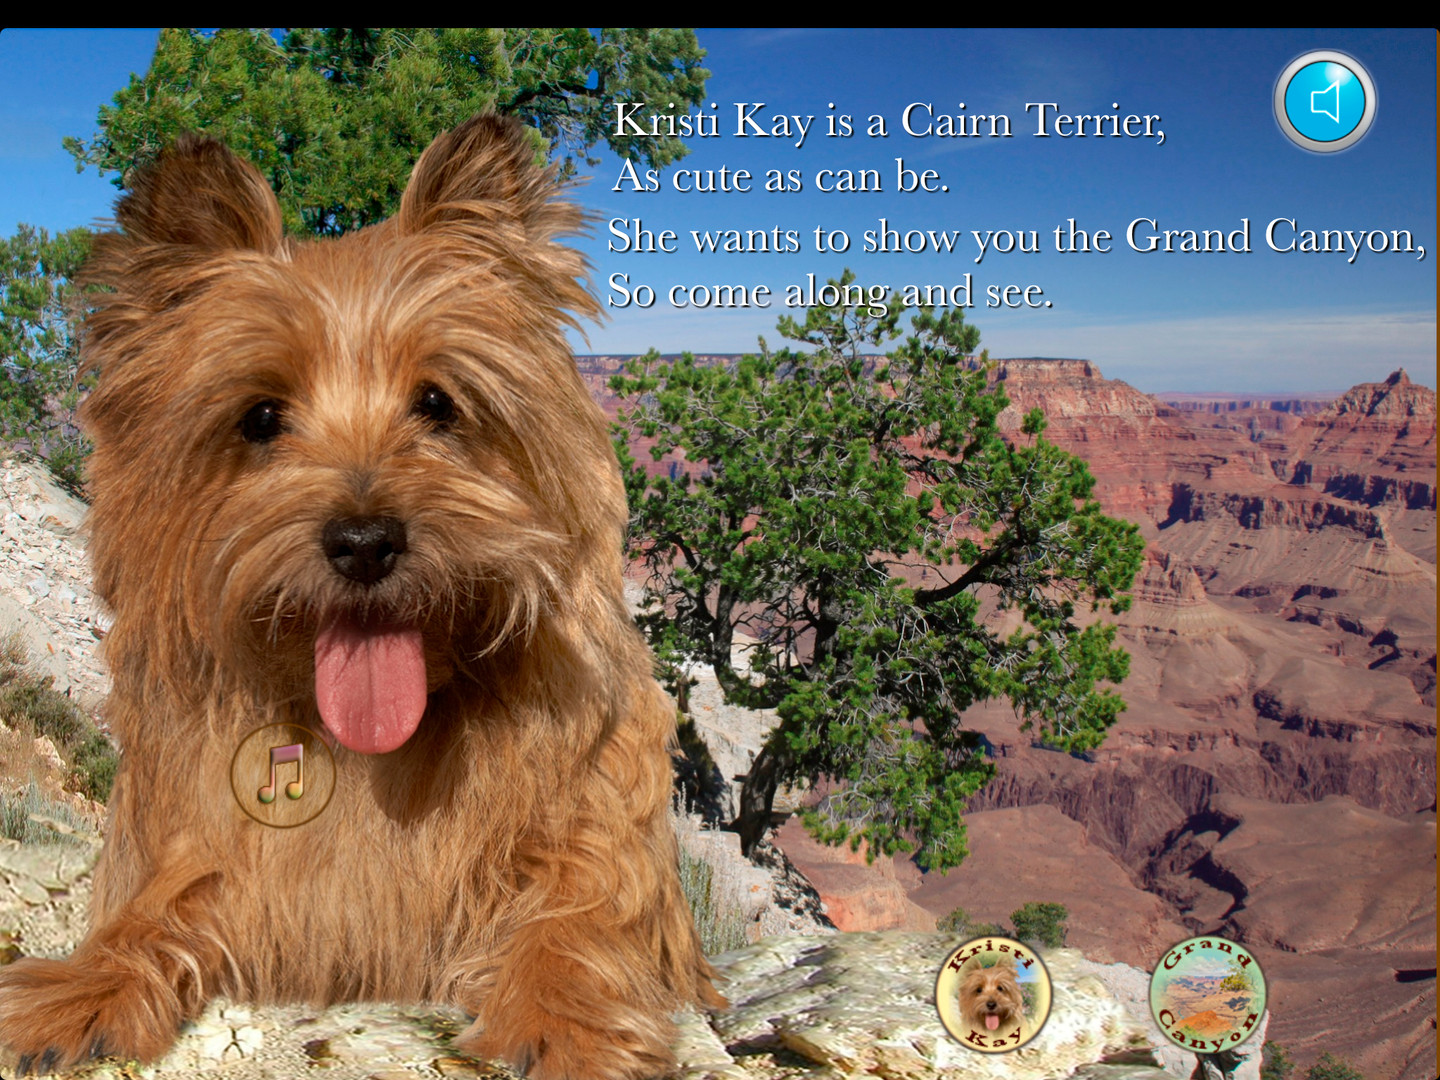 A Cairn Terrier travel to Grand Canyon